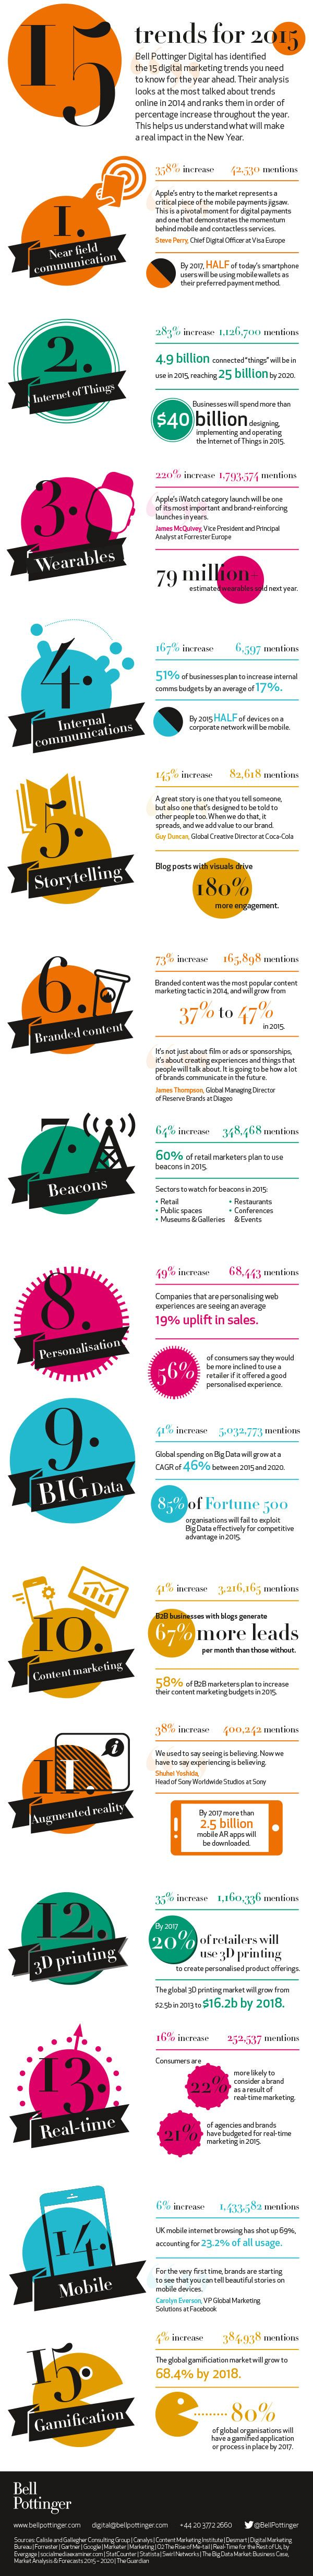 Top 15 digital trends in 2015 for B2B (infographic included)